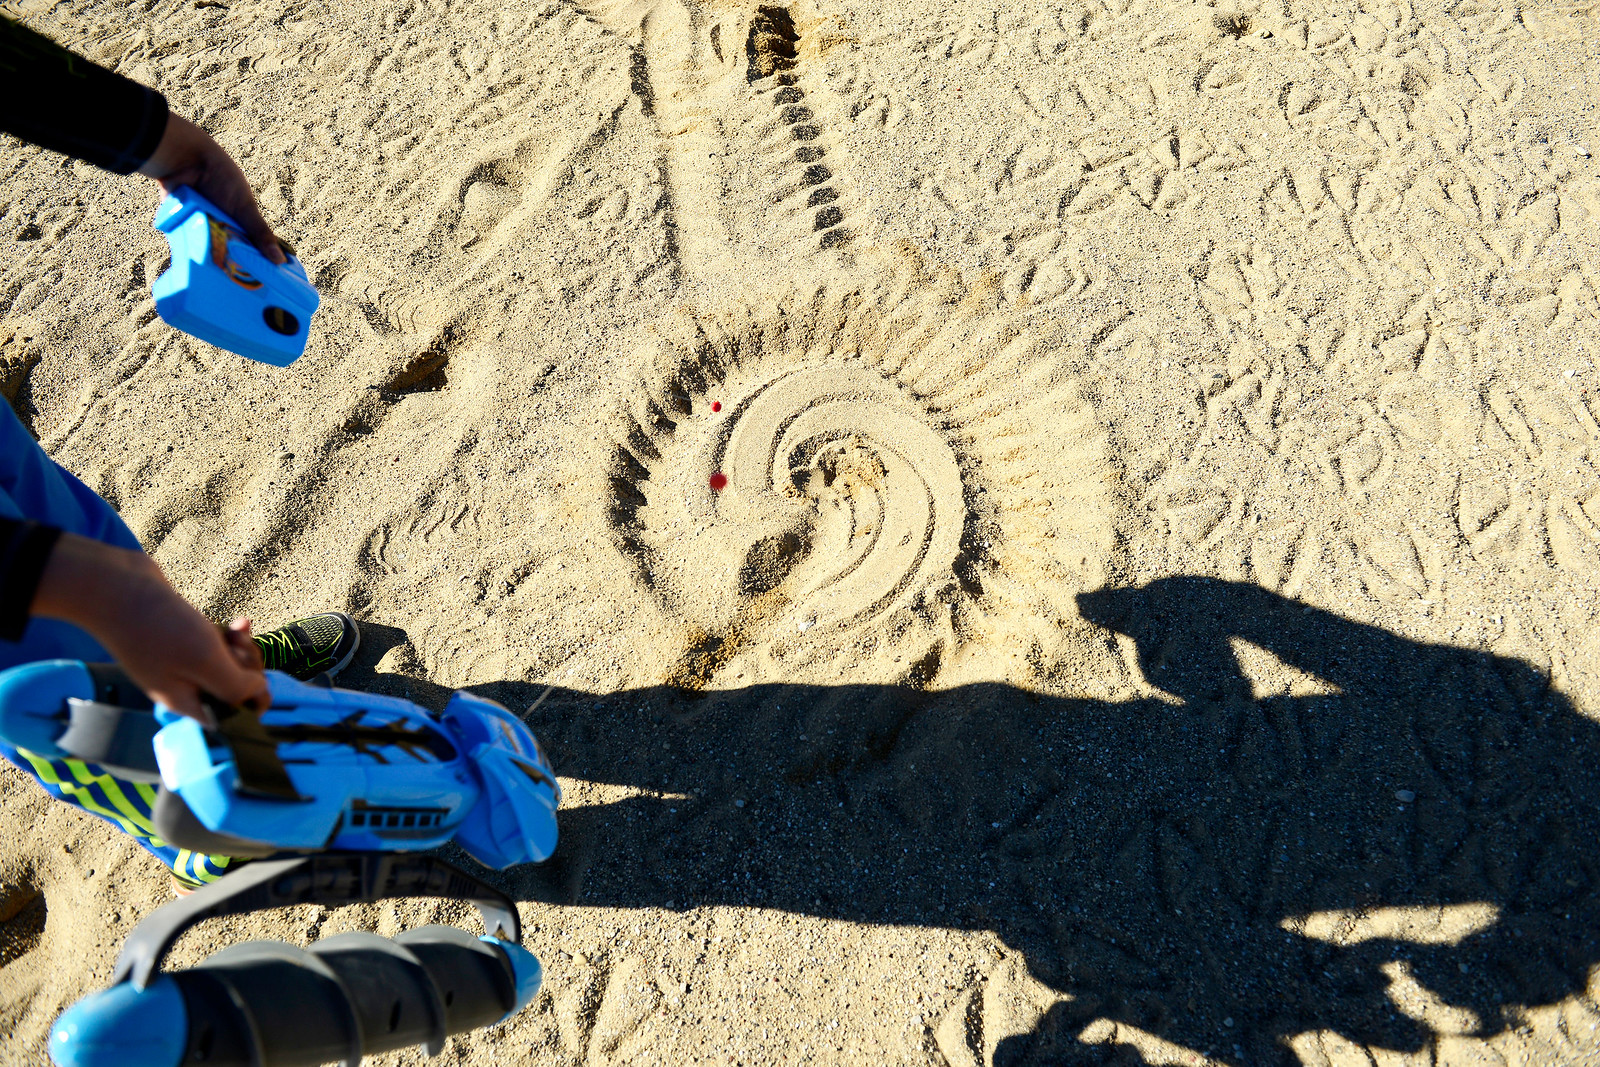 Kayla Wolf for Shaw Media–Ranveer Dhingra, 7, points out a design in the sand that the remote control toy he was playing with made Saturday, Feb. 18, 2017, at Three Oaks Recreation Area in Crystal Lake. Dhingra's family was having a picnic at the park.